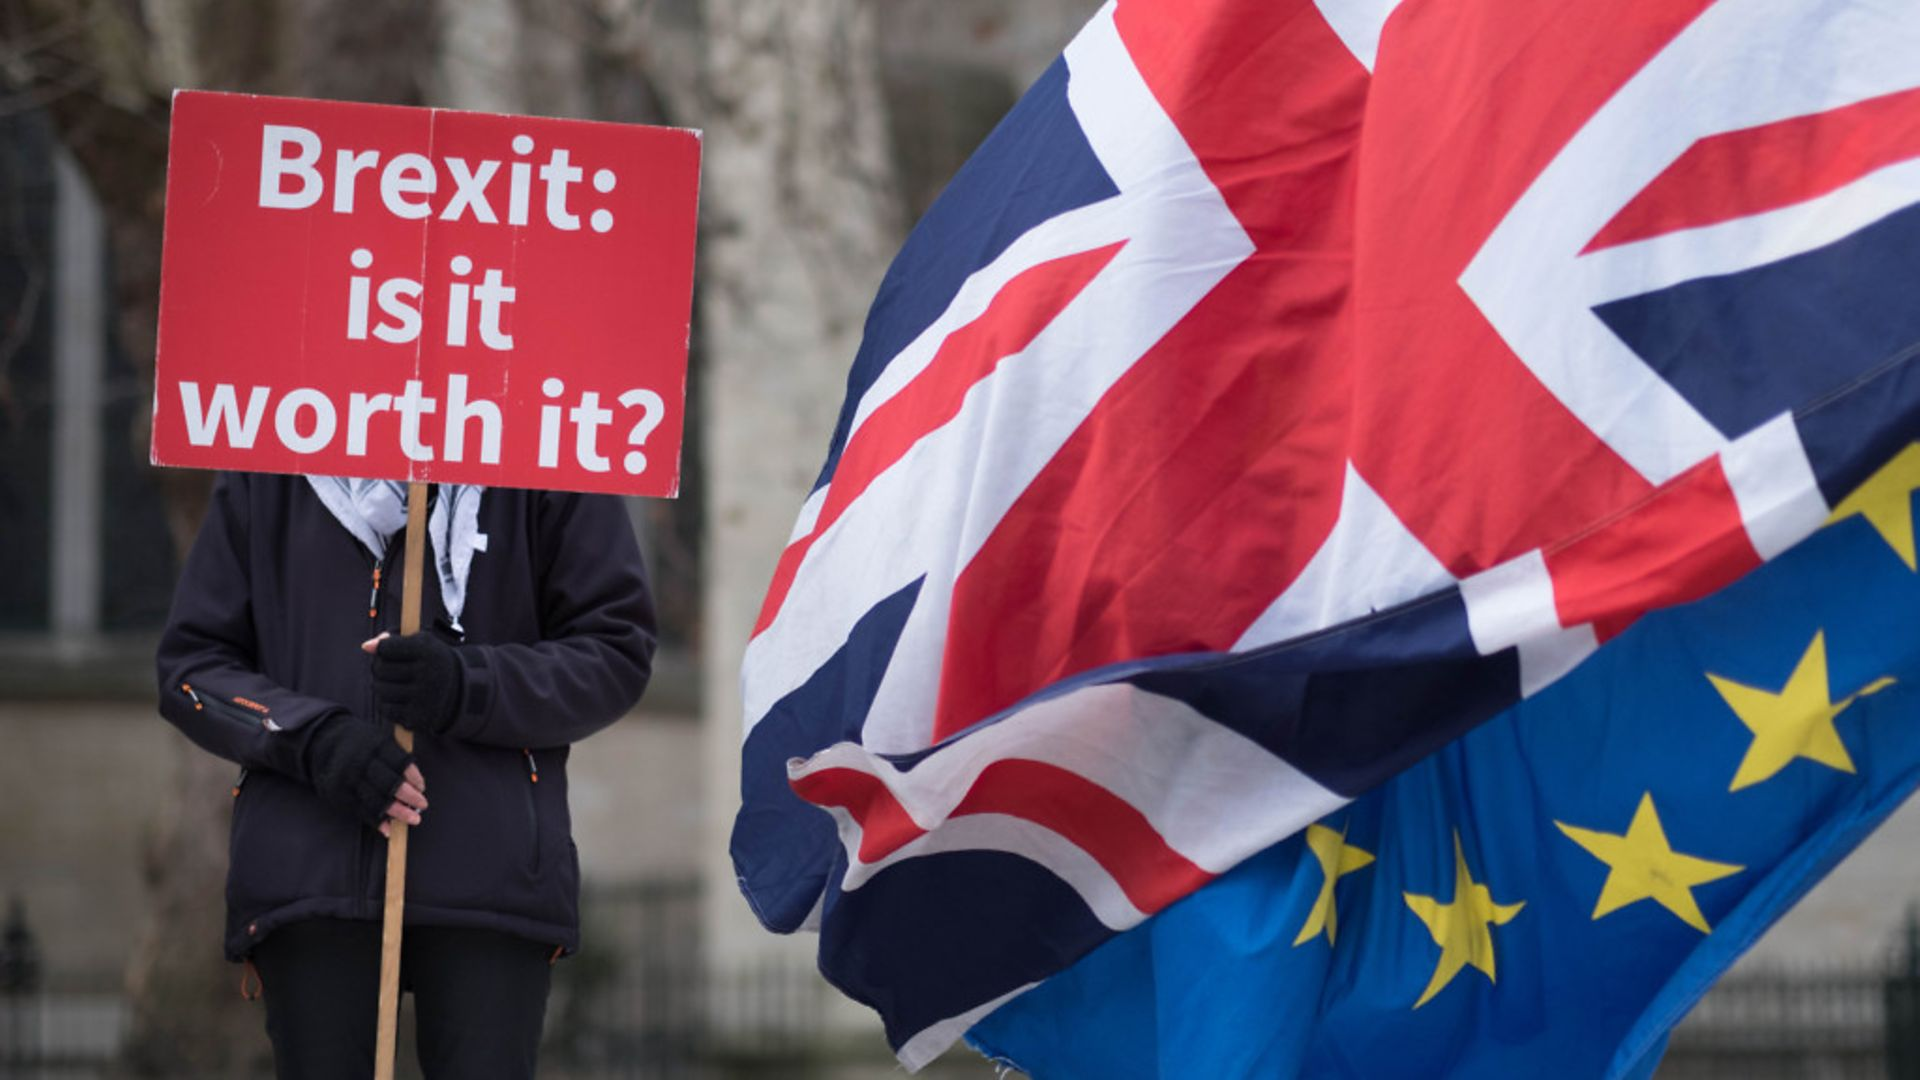 Anti Brexit demonstrators outside the Houses of Parliament in London - Credit: PA Archive/PA Images